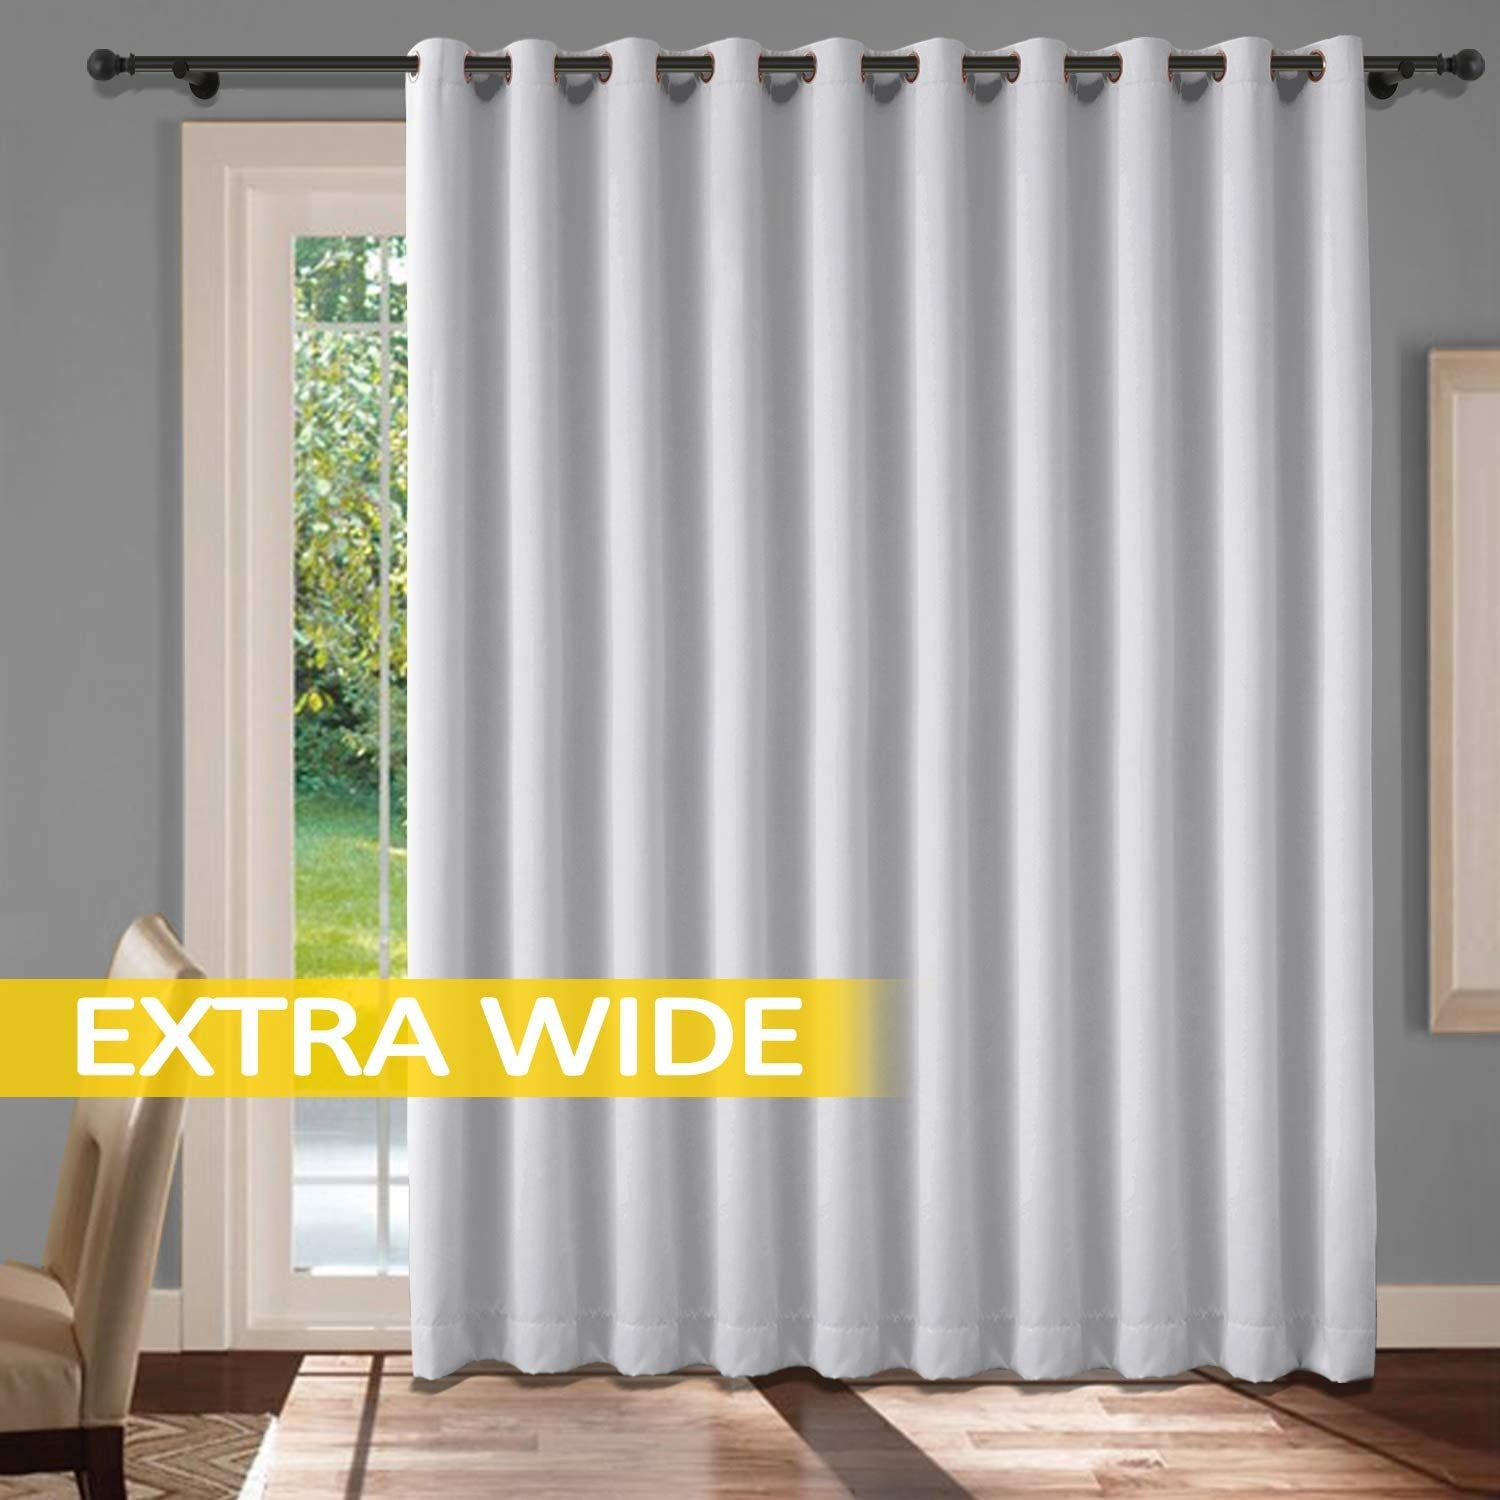 Amazon Com Cololeaf Extra Wide Patio Door Curtains Thermal